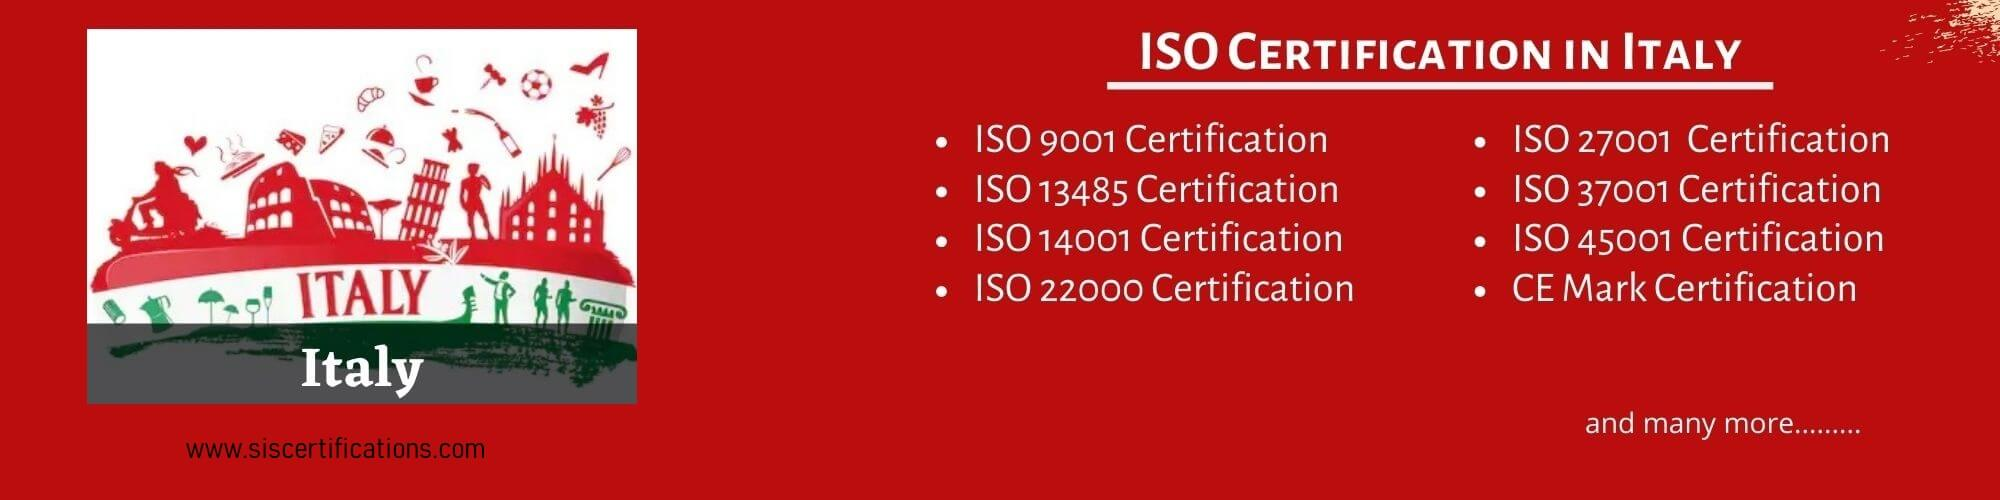 ISO Certification in Italy